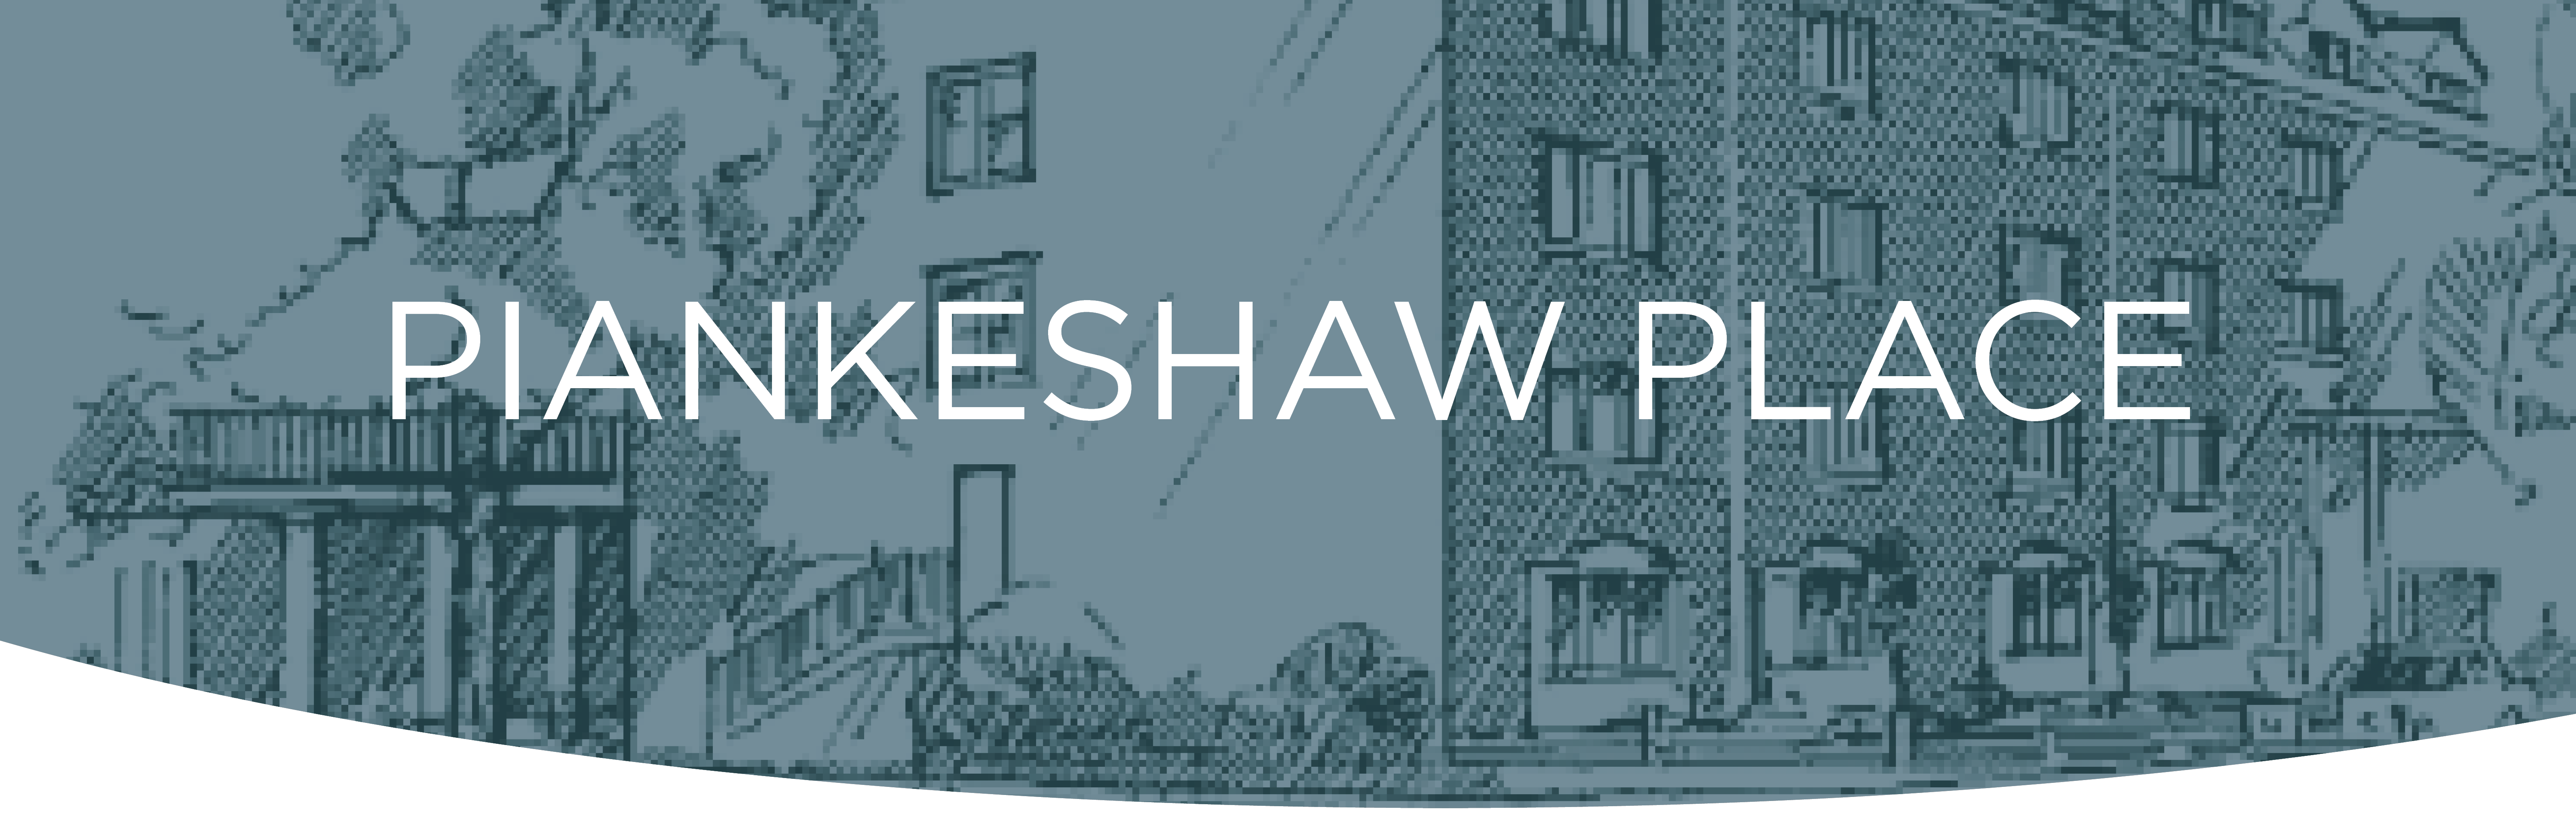 piankeshaw place header